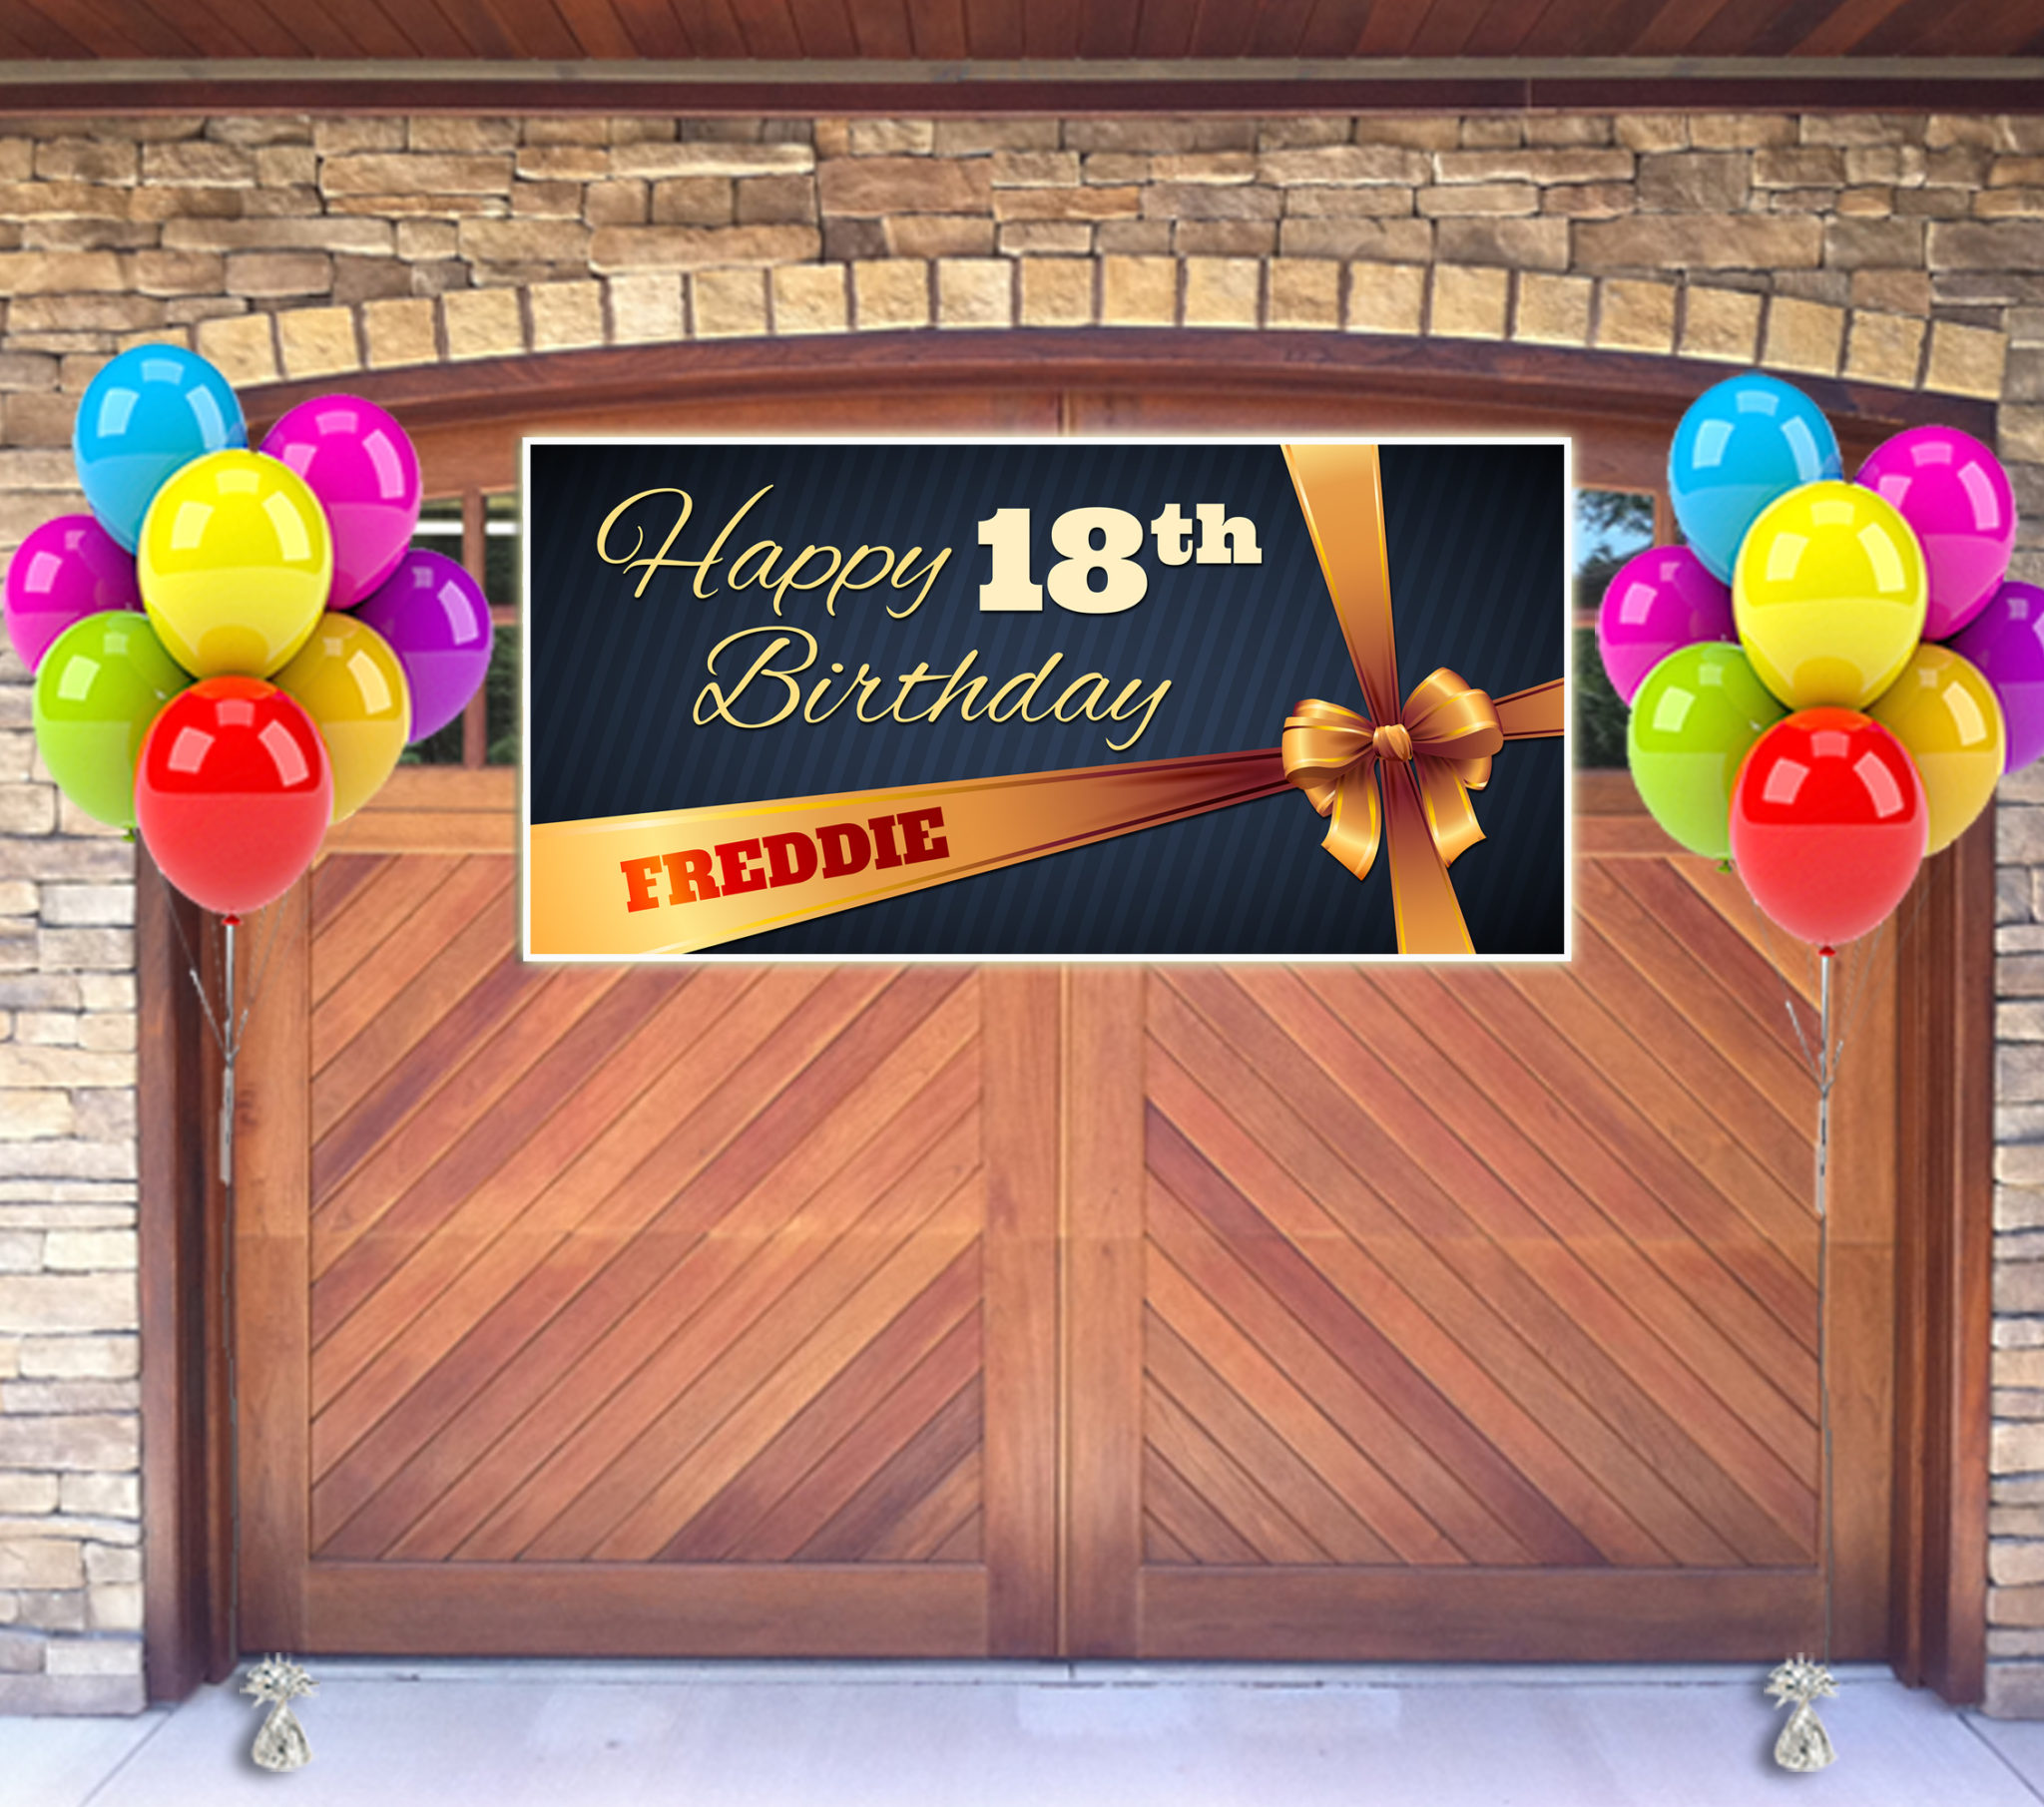 18th birthday banners personalized ; 18th-birthday-banner-08-